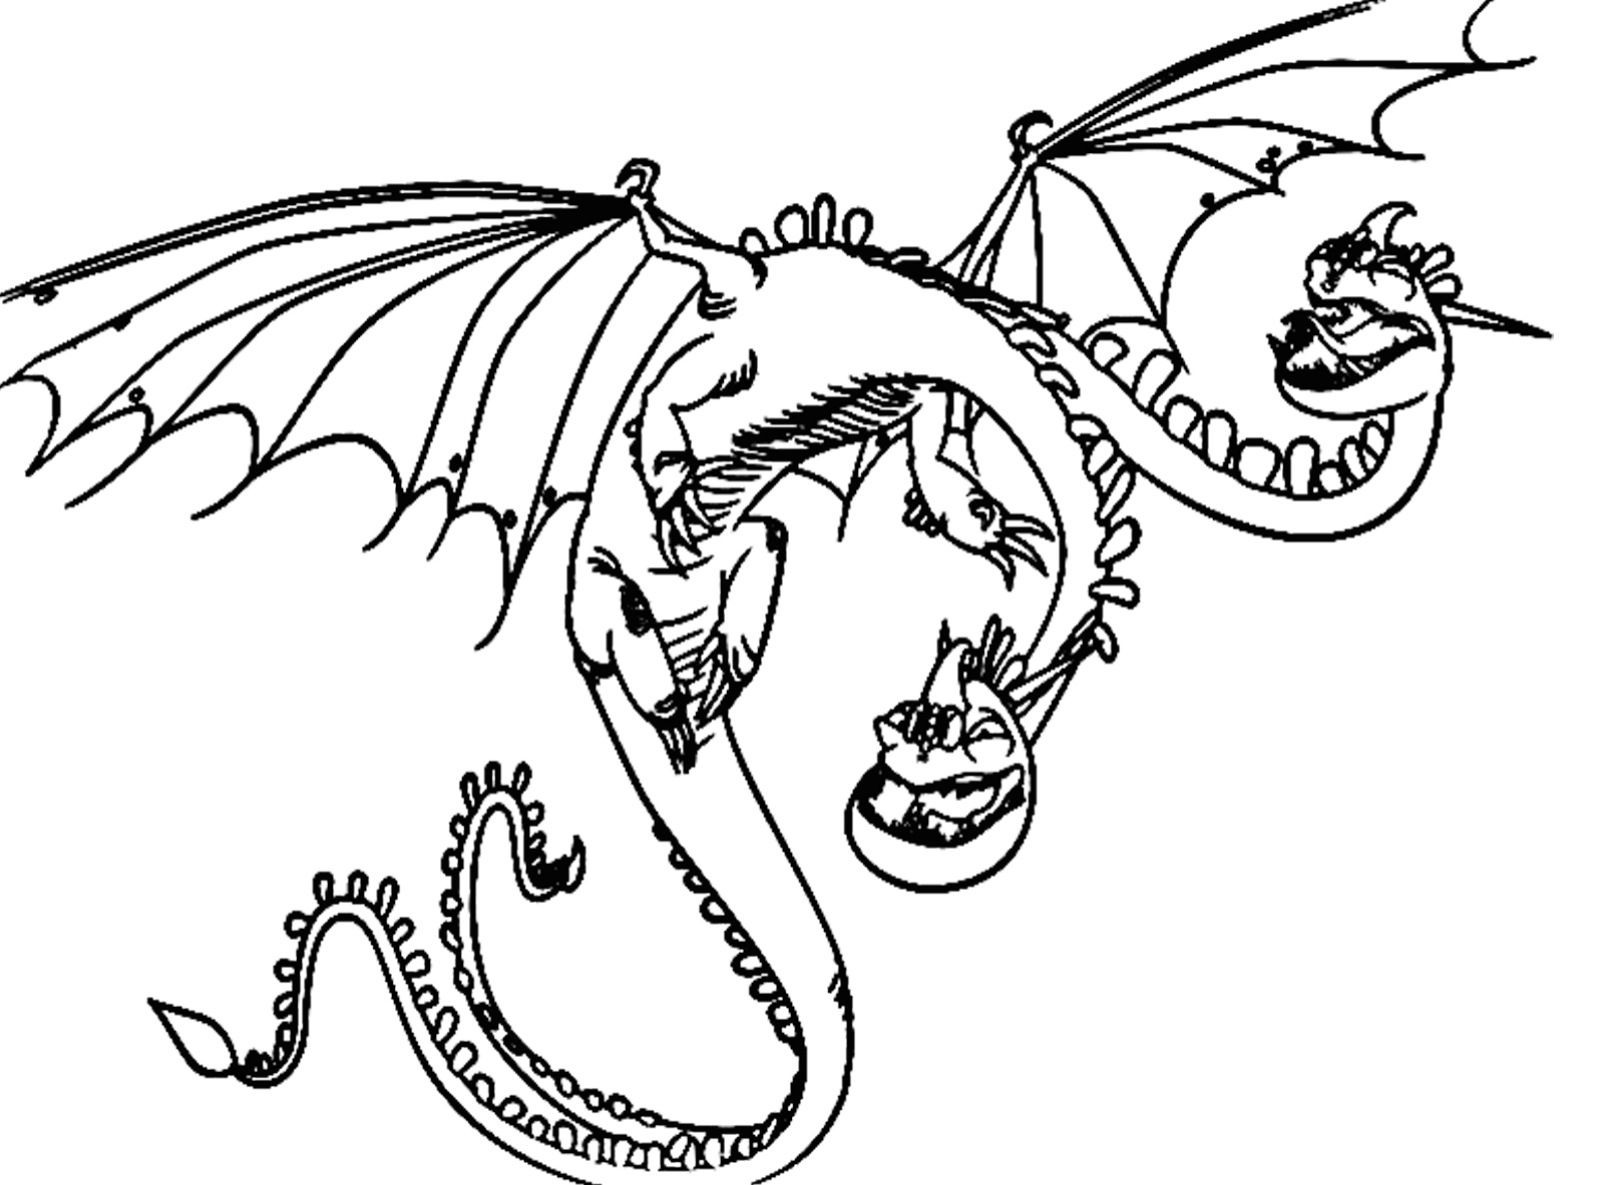 how to train your dragon coloring pages online related pictures how to train your dragon coloring pages train to online how your coloring dragon pages